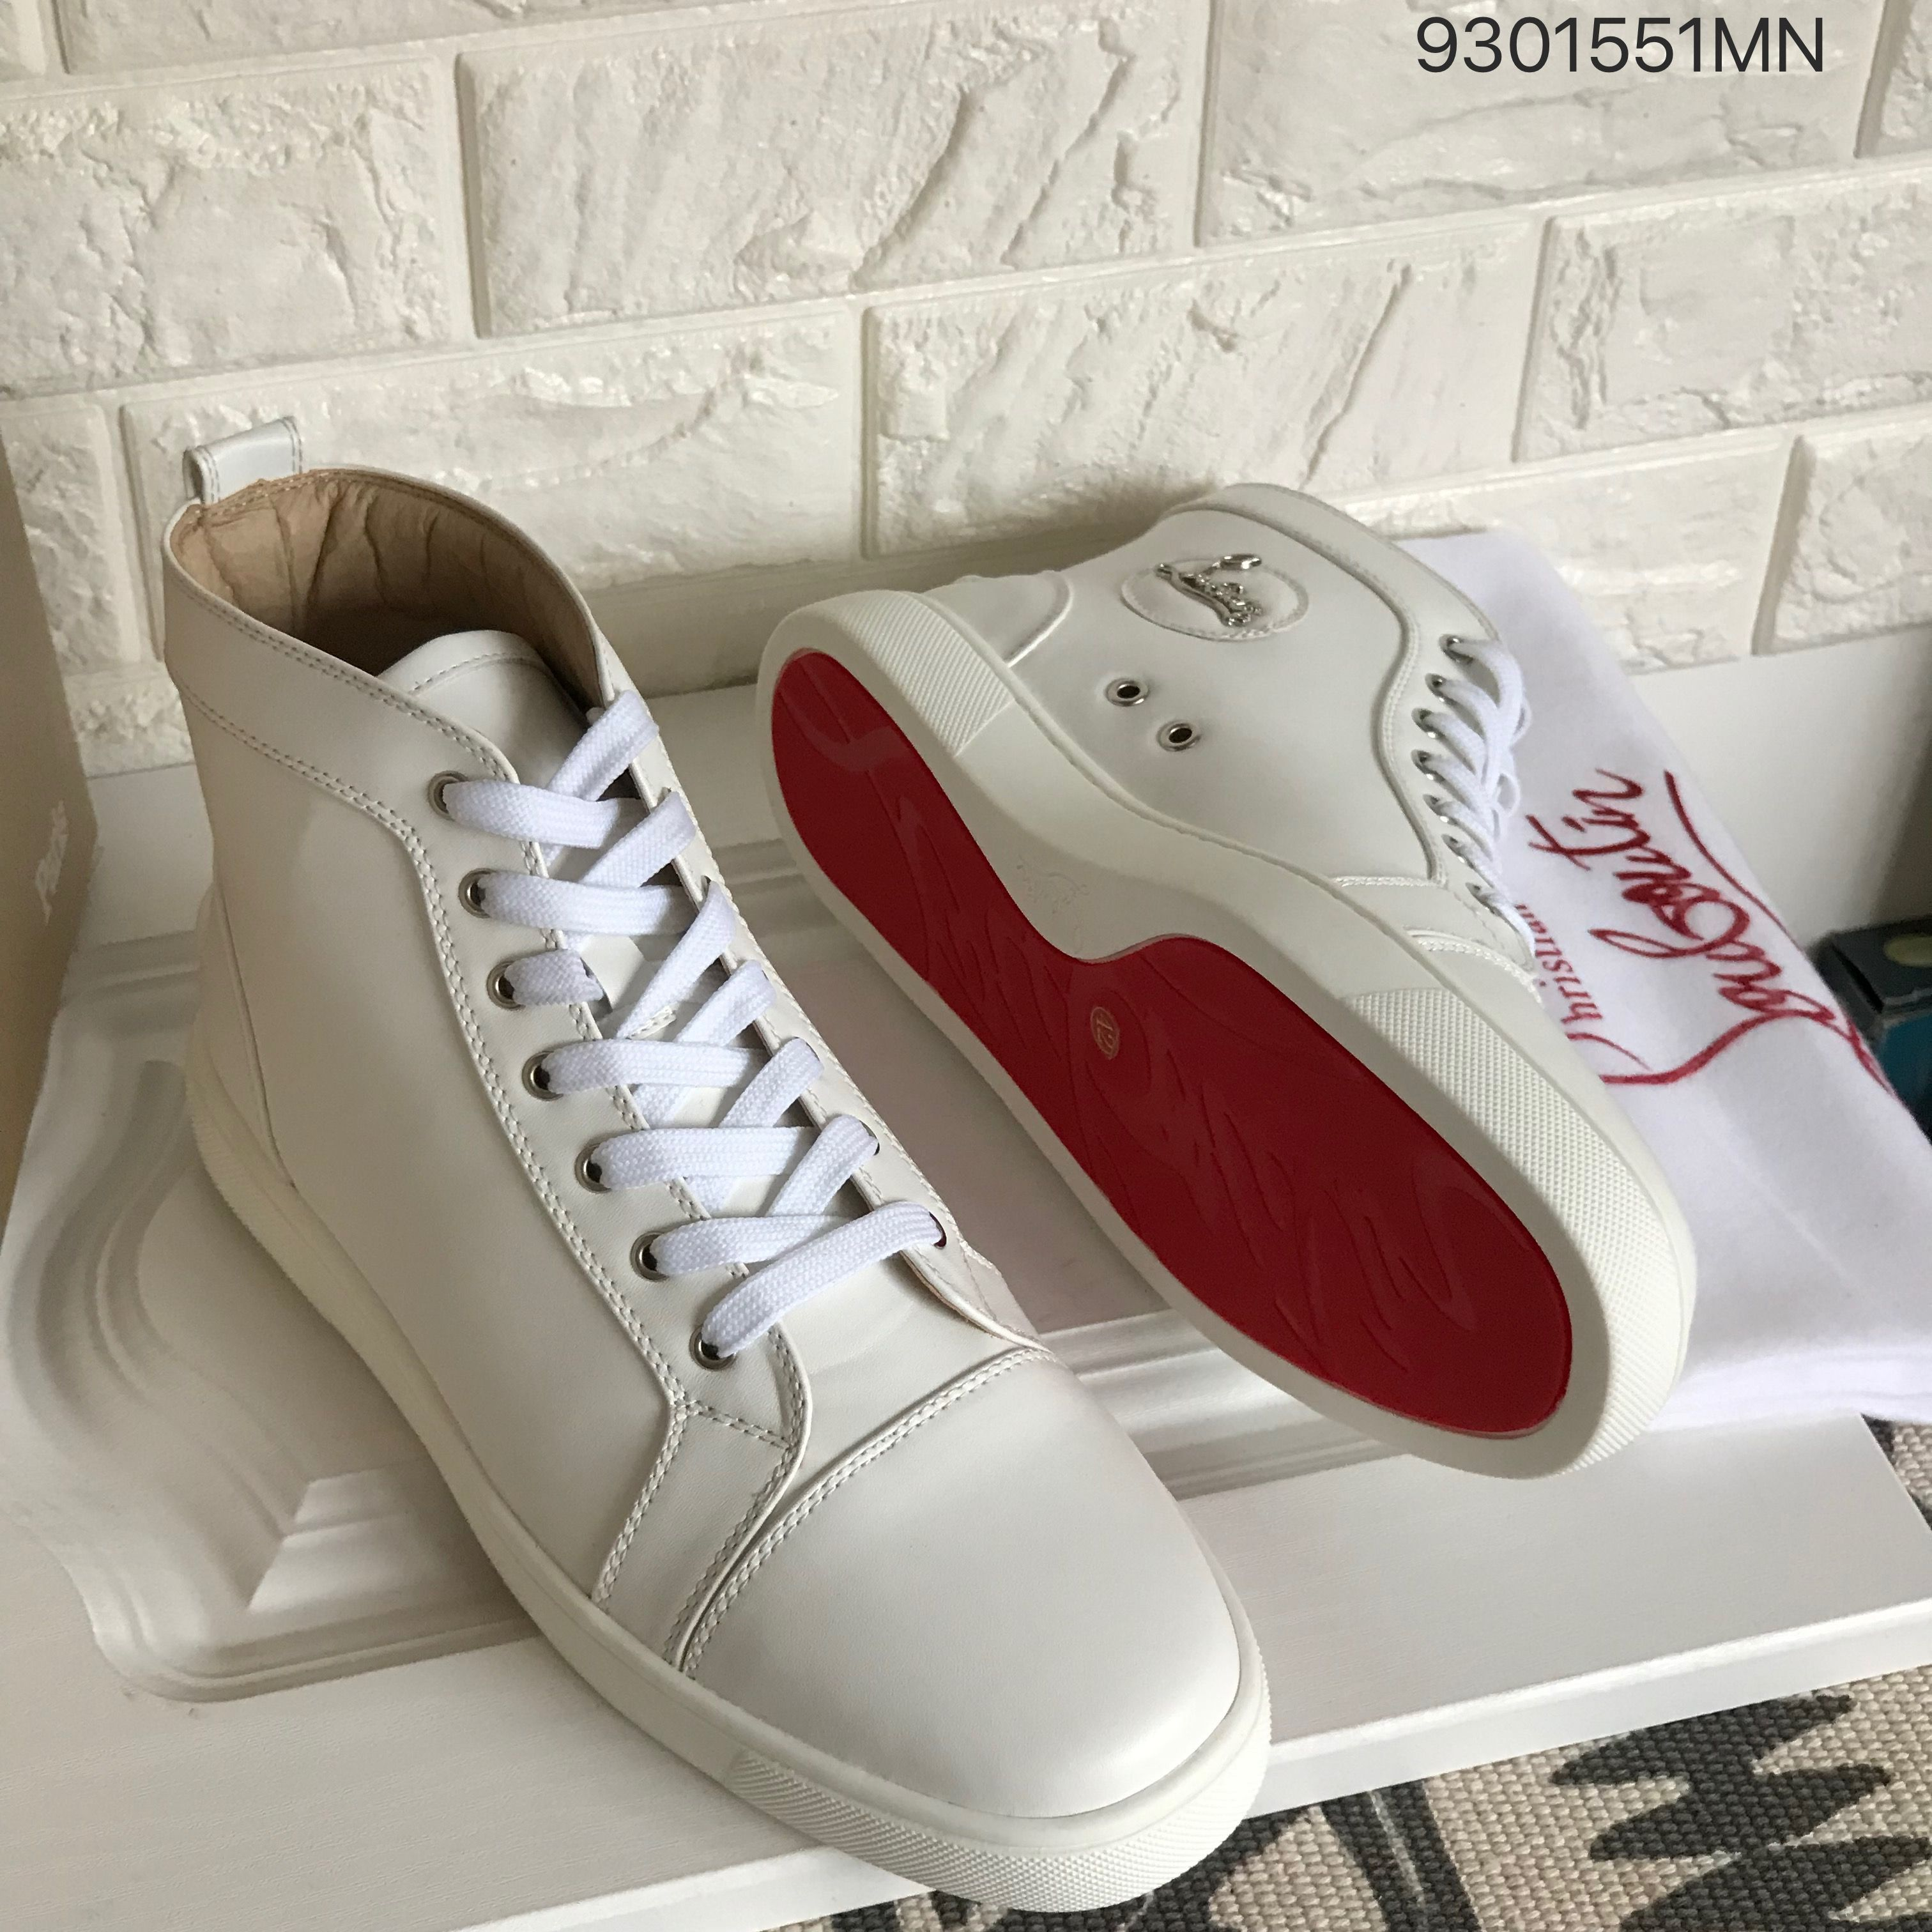 super popular 62b4d 5ac8e Christian louboutin full white plain leather man sneakers ...